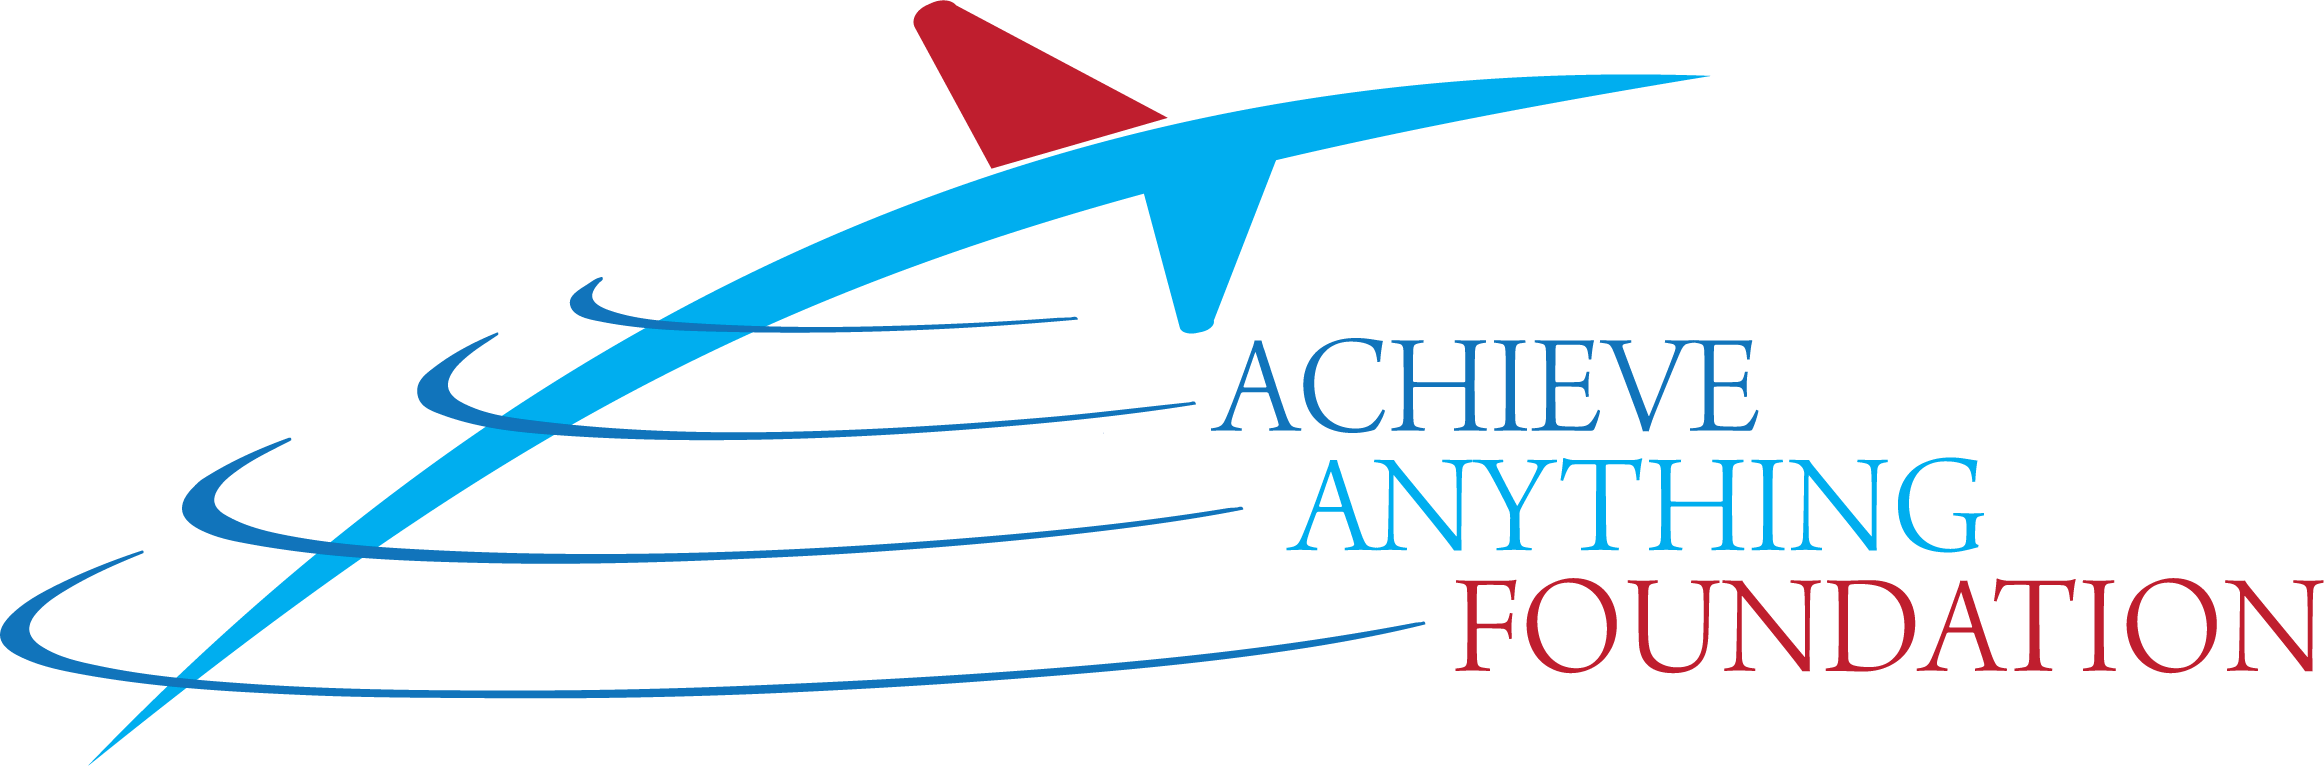 Achieve Anything Foundation logo